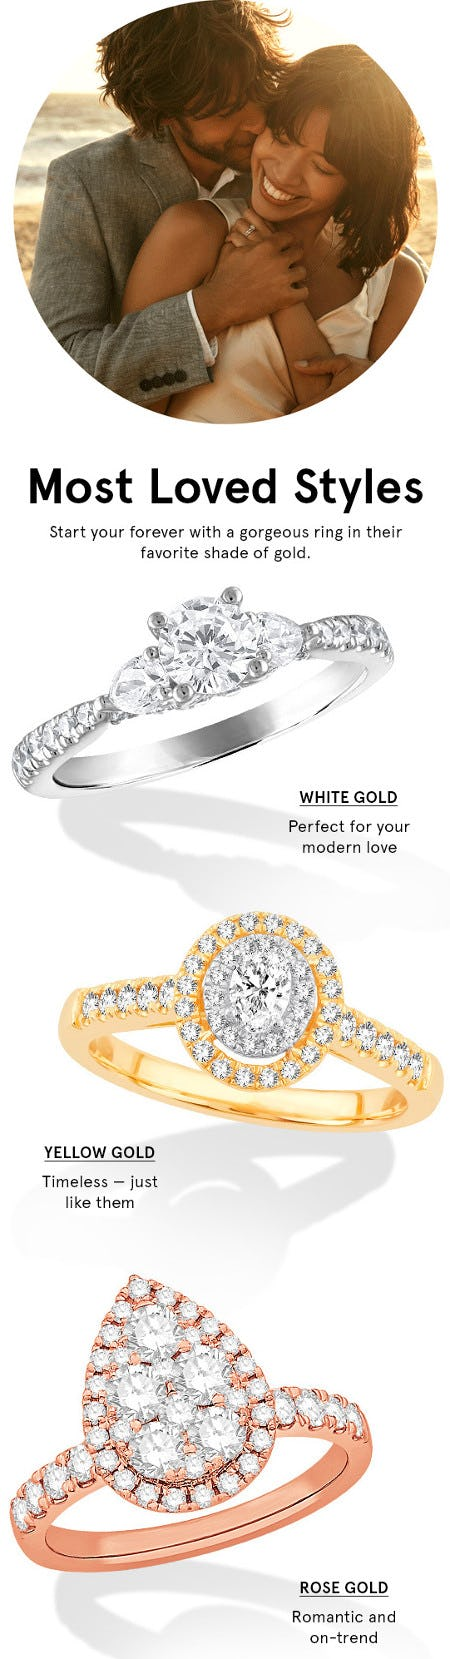 Top-Rated Bridal Rings They'll Love from Kay Jewelers